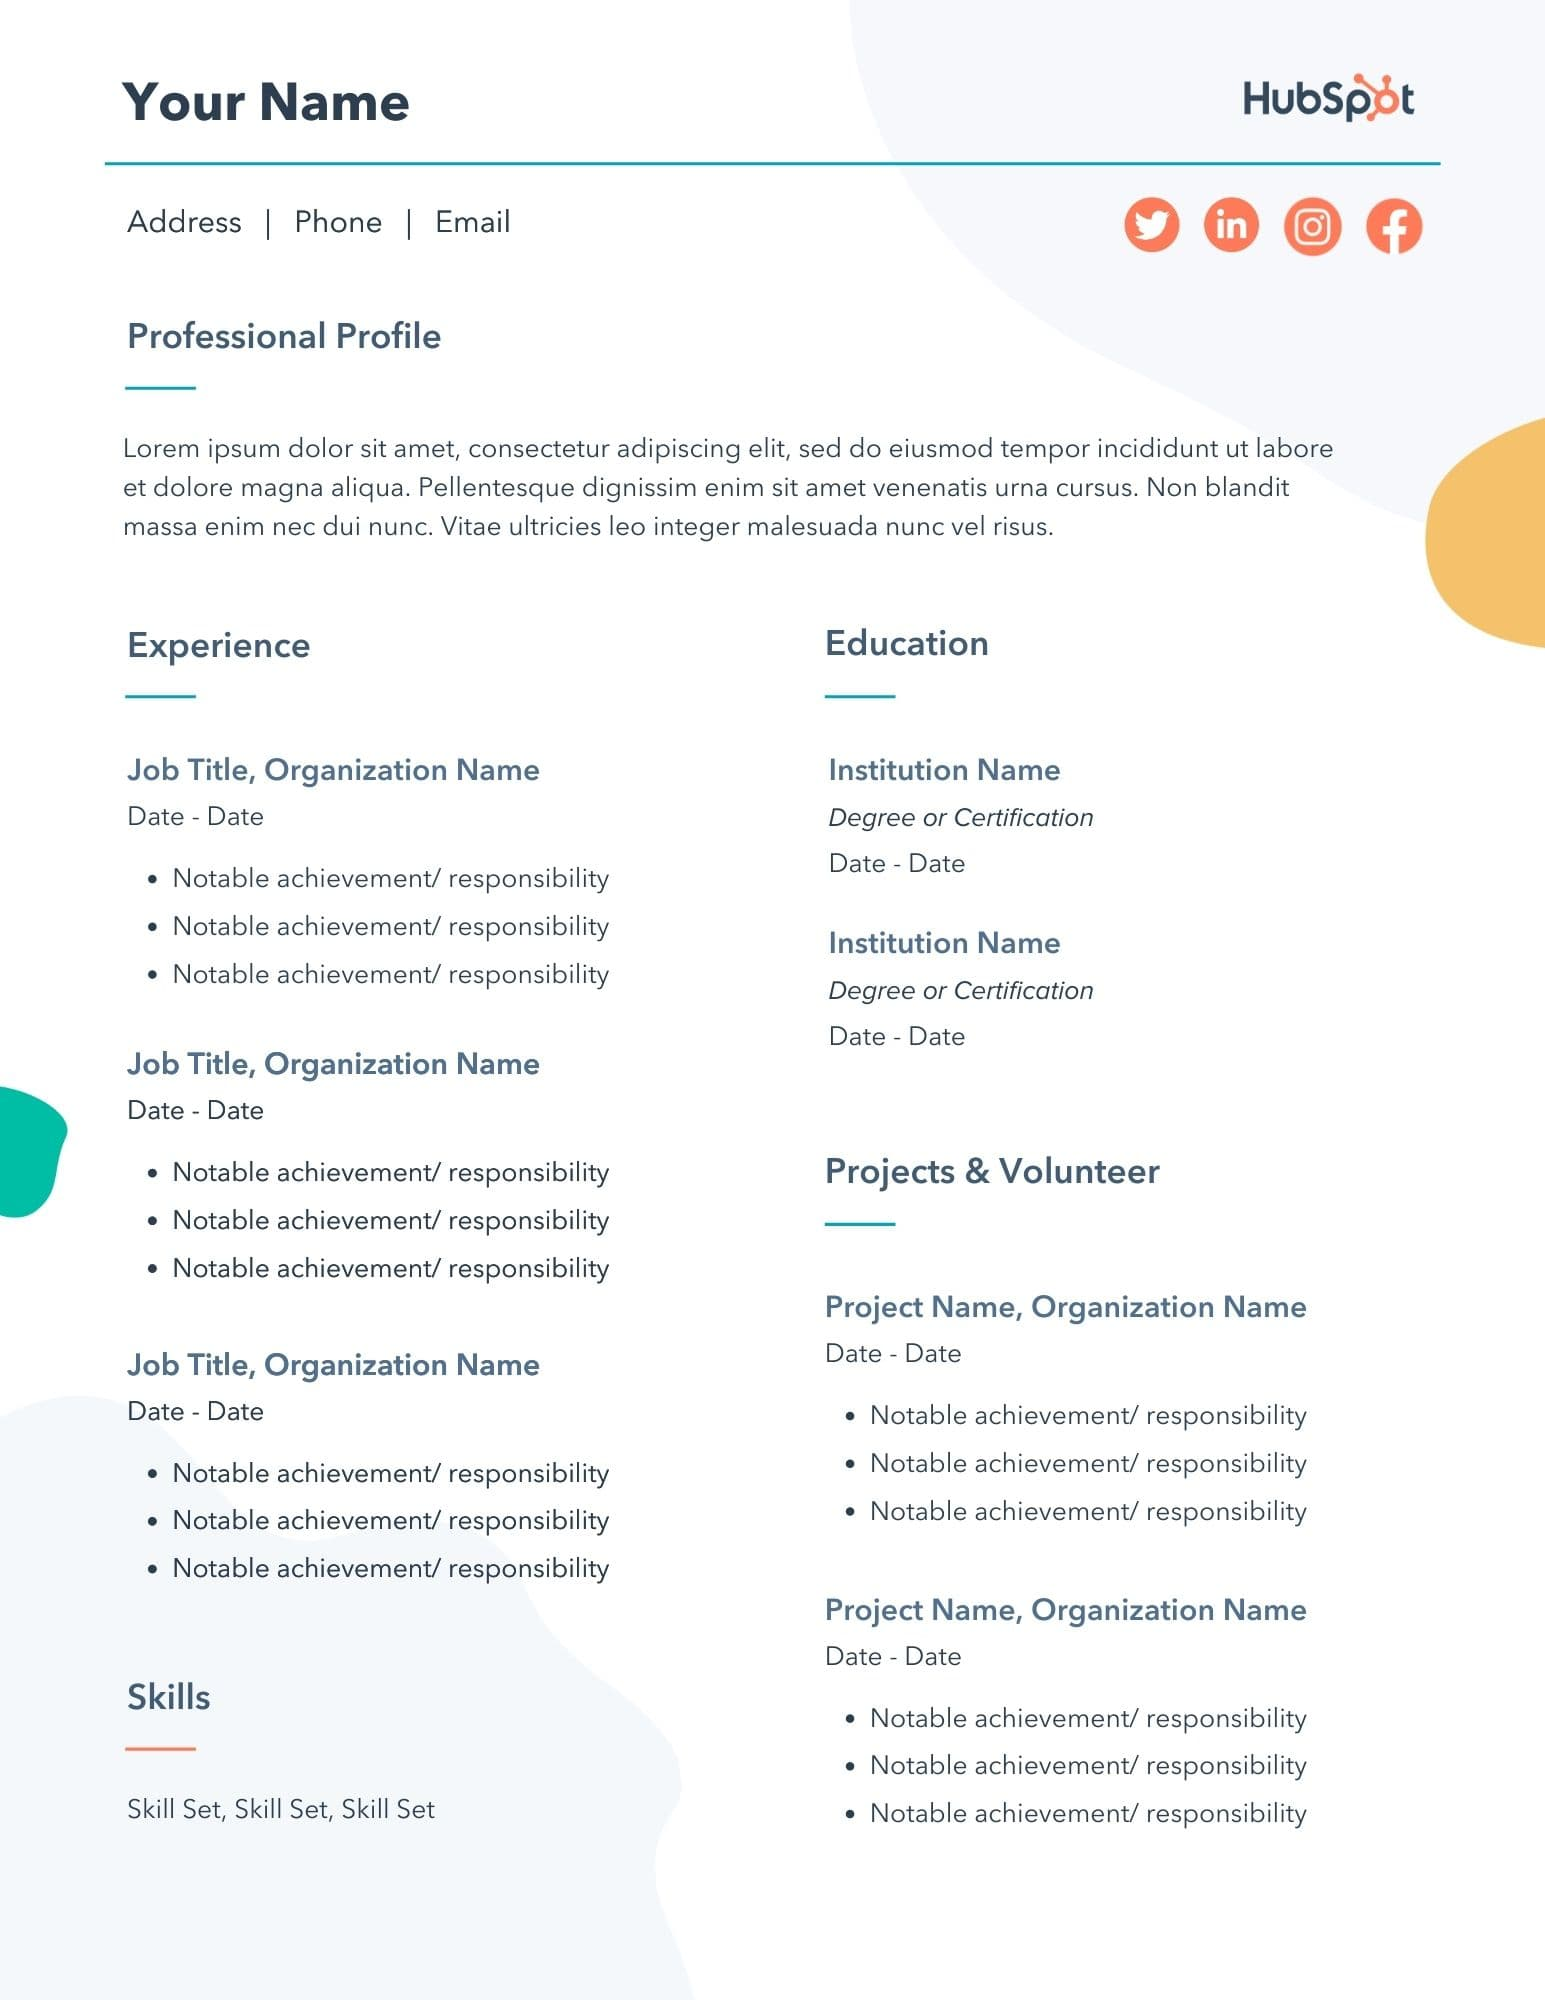 free resume templates for microsoft word to make your own first job layout template Resume First Job Resume Layout